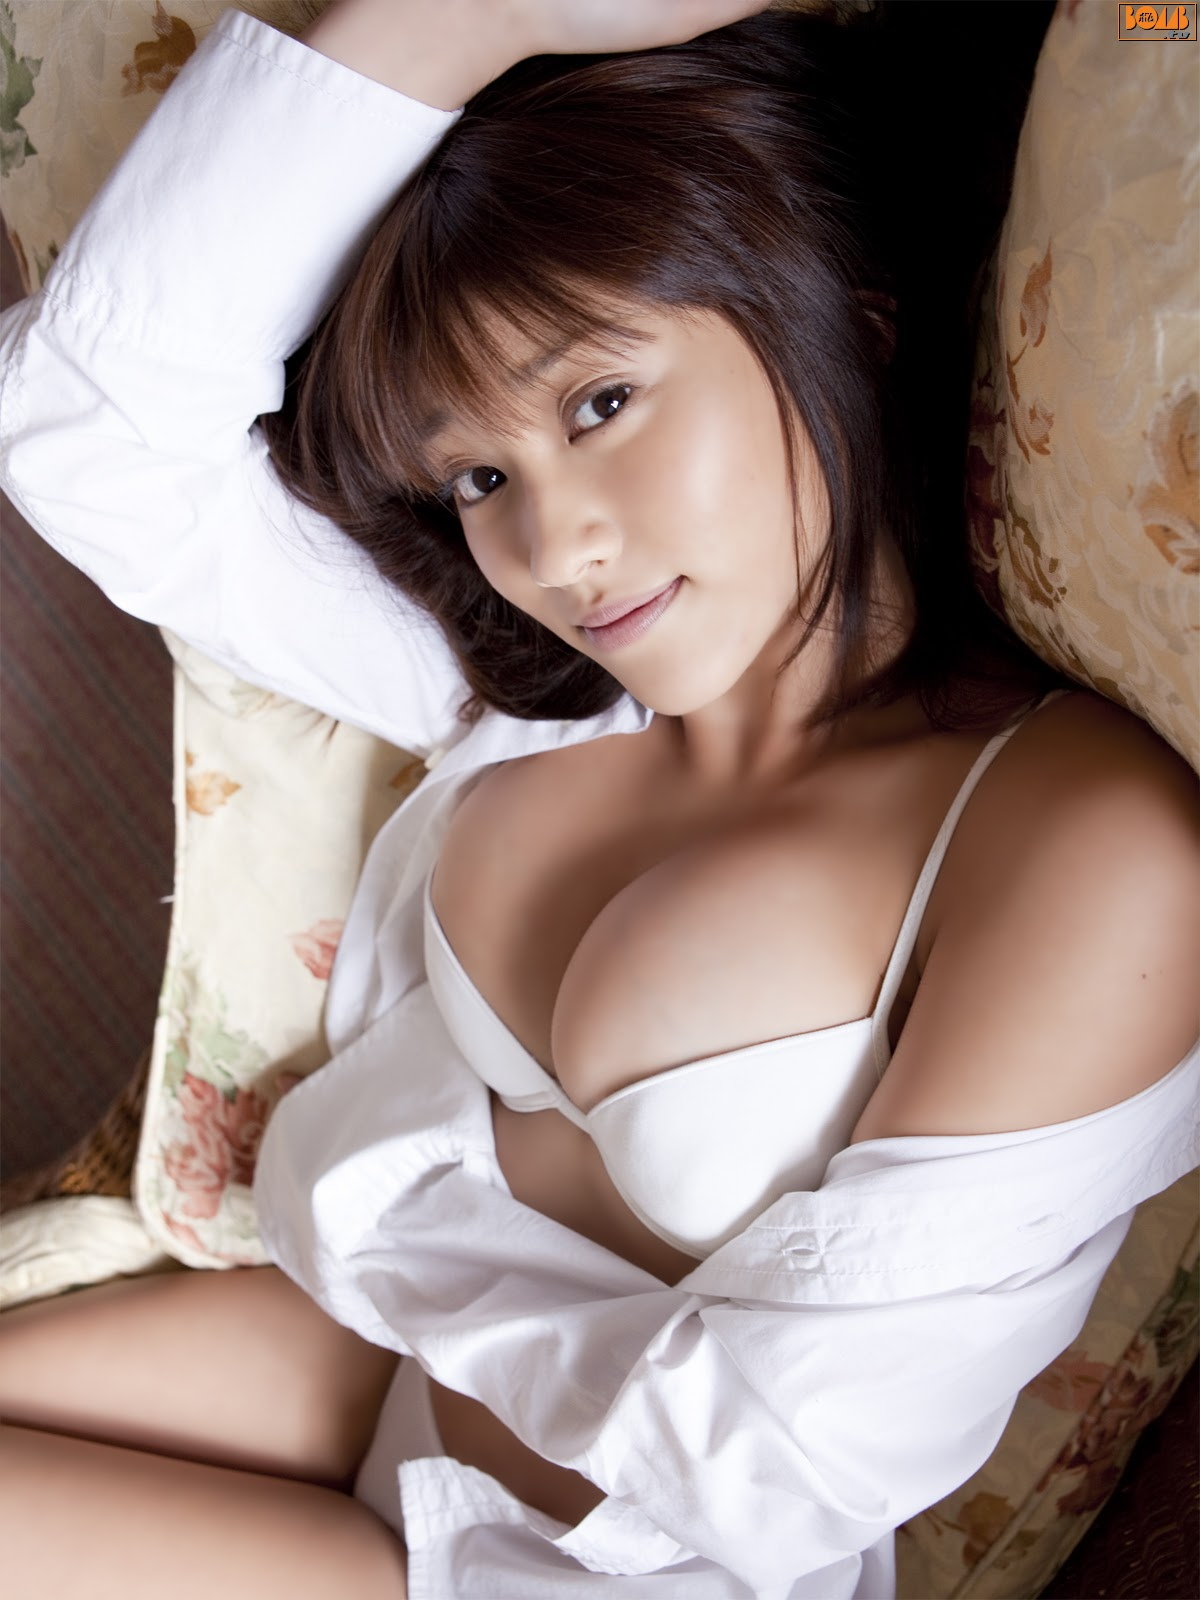 All kinds of redweathered skin sweaty skin smiles in the morning light Mikie Hara018